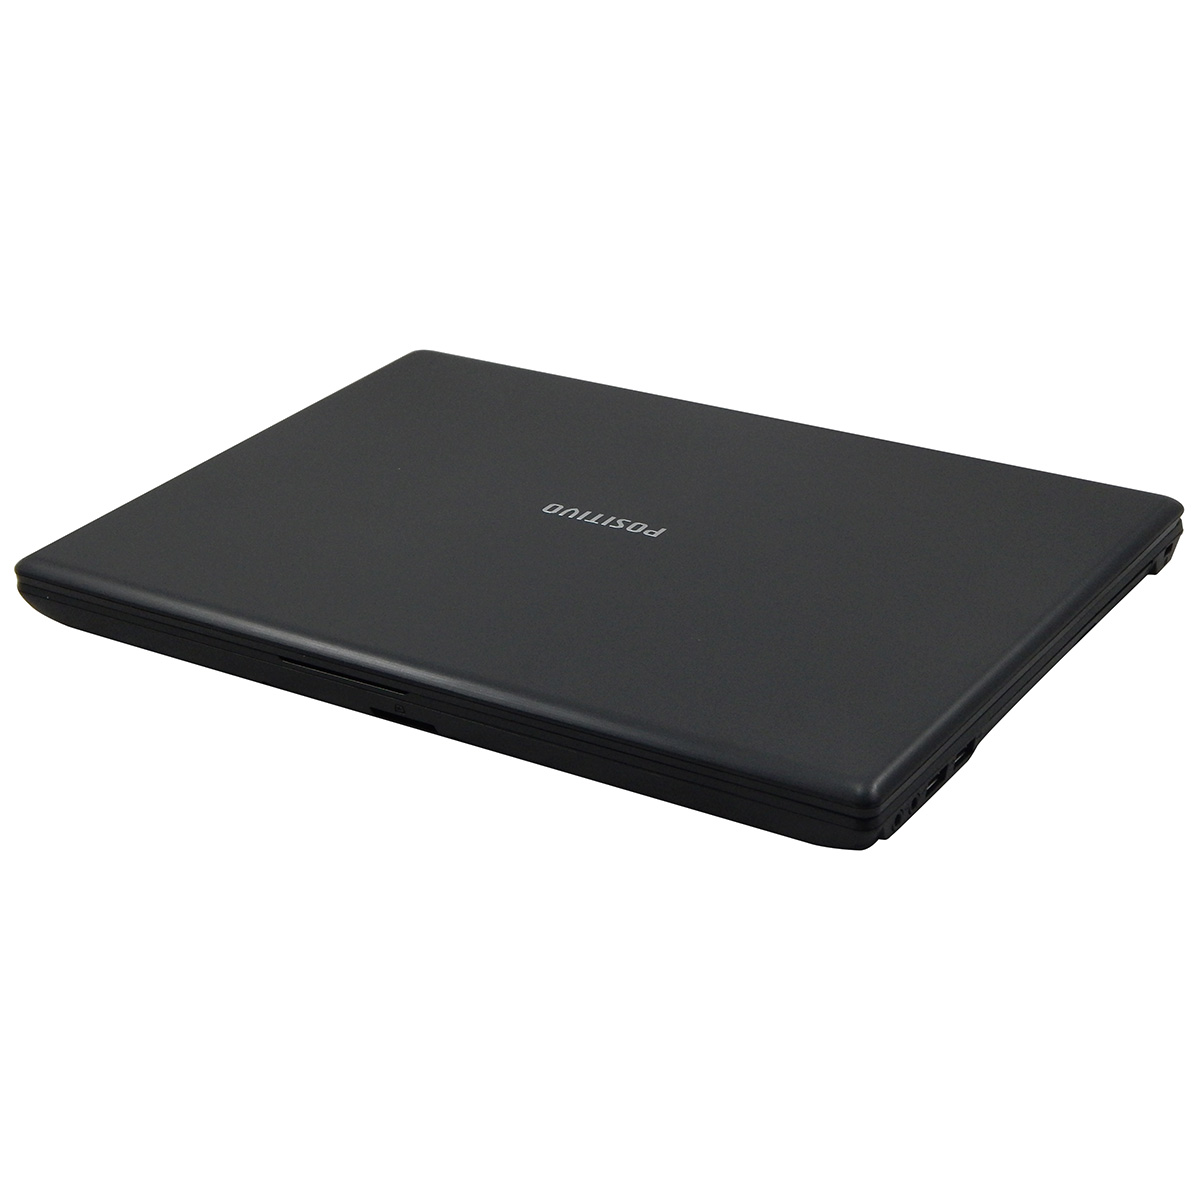 Notebook POSITIVO PREMIUM S6060 I3-2328m 8gb 500gb Dvd - Seminovo